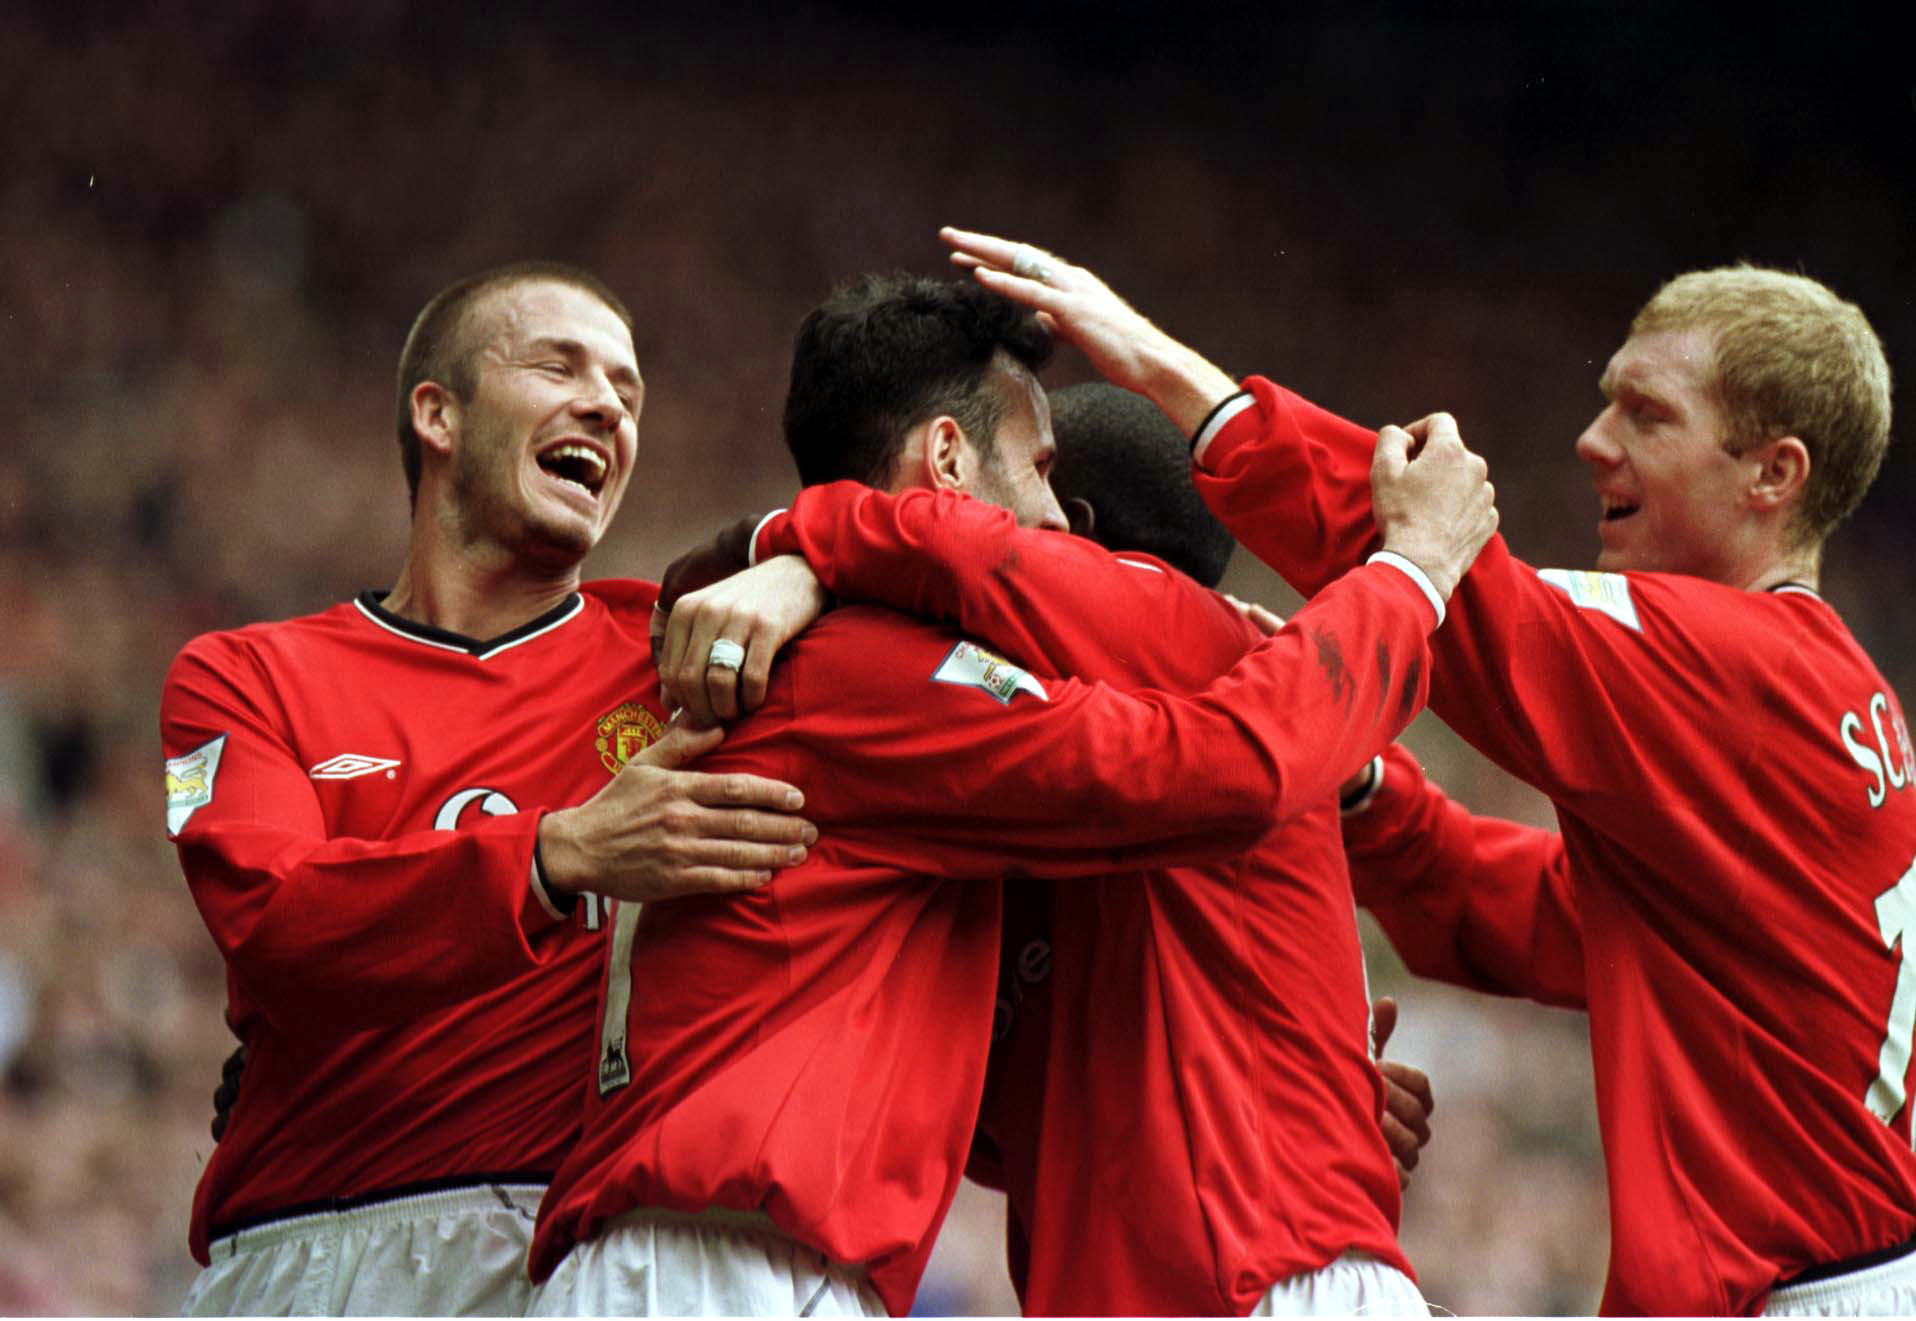 Here's what happened when the Class of 92 played the ...